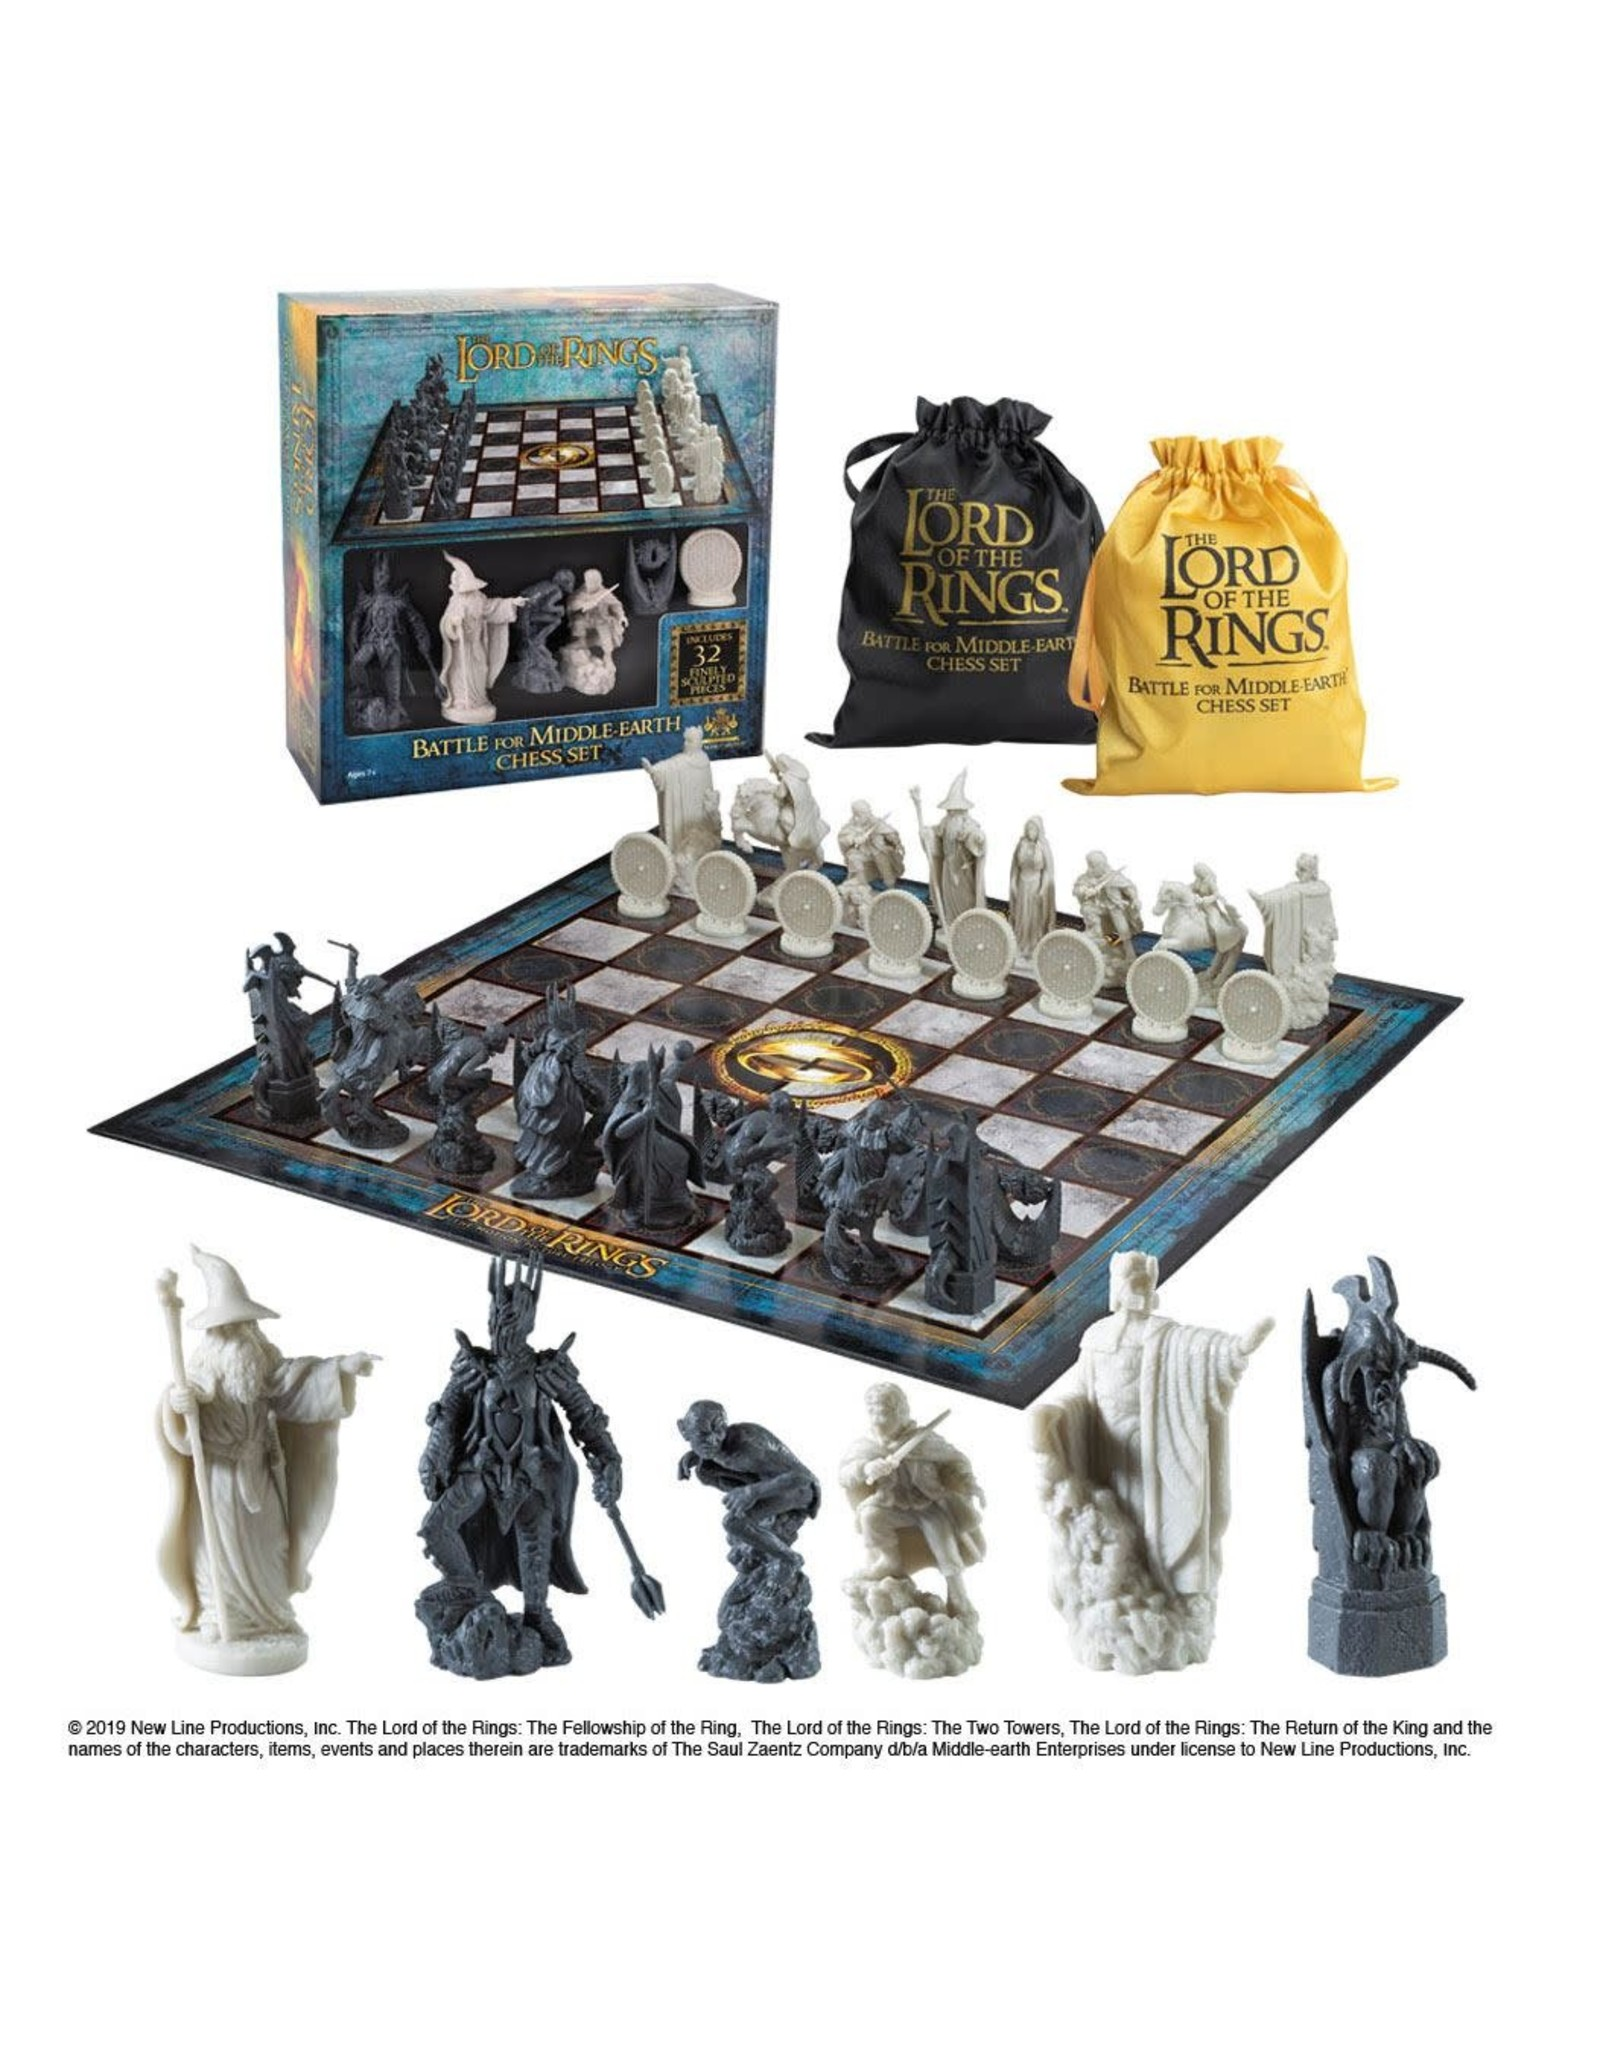 Noble Collection LORD OF THE RINGS Chess Set - Battle for Middle Earth Expansion Set